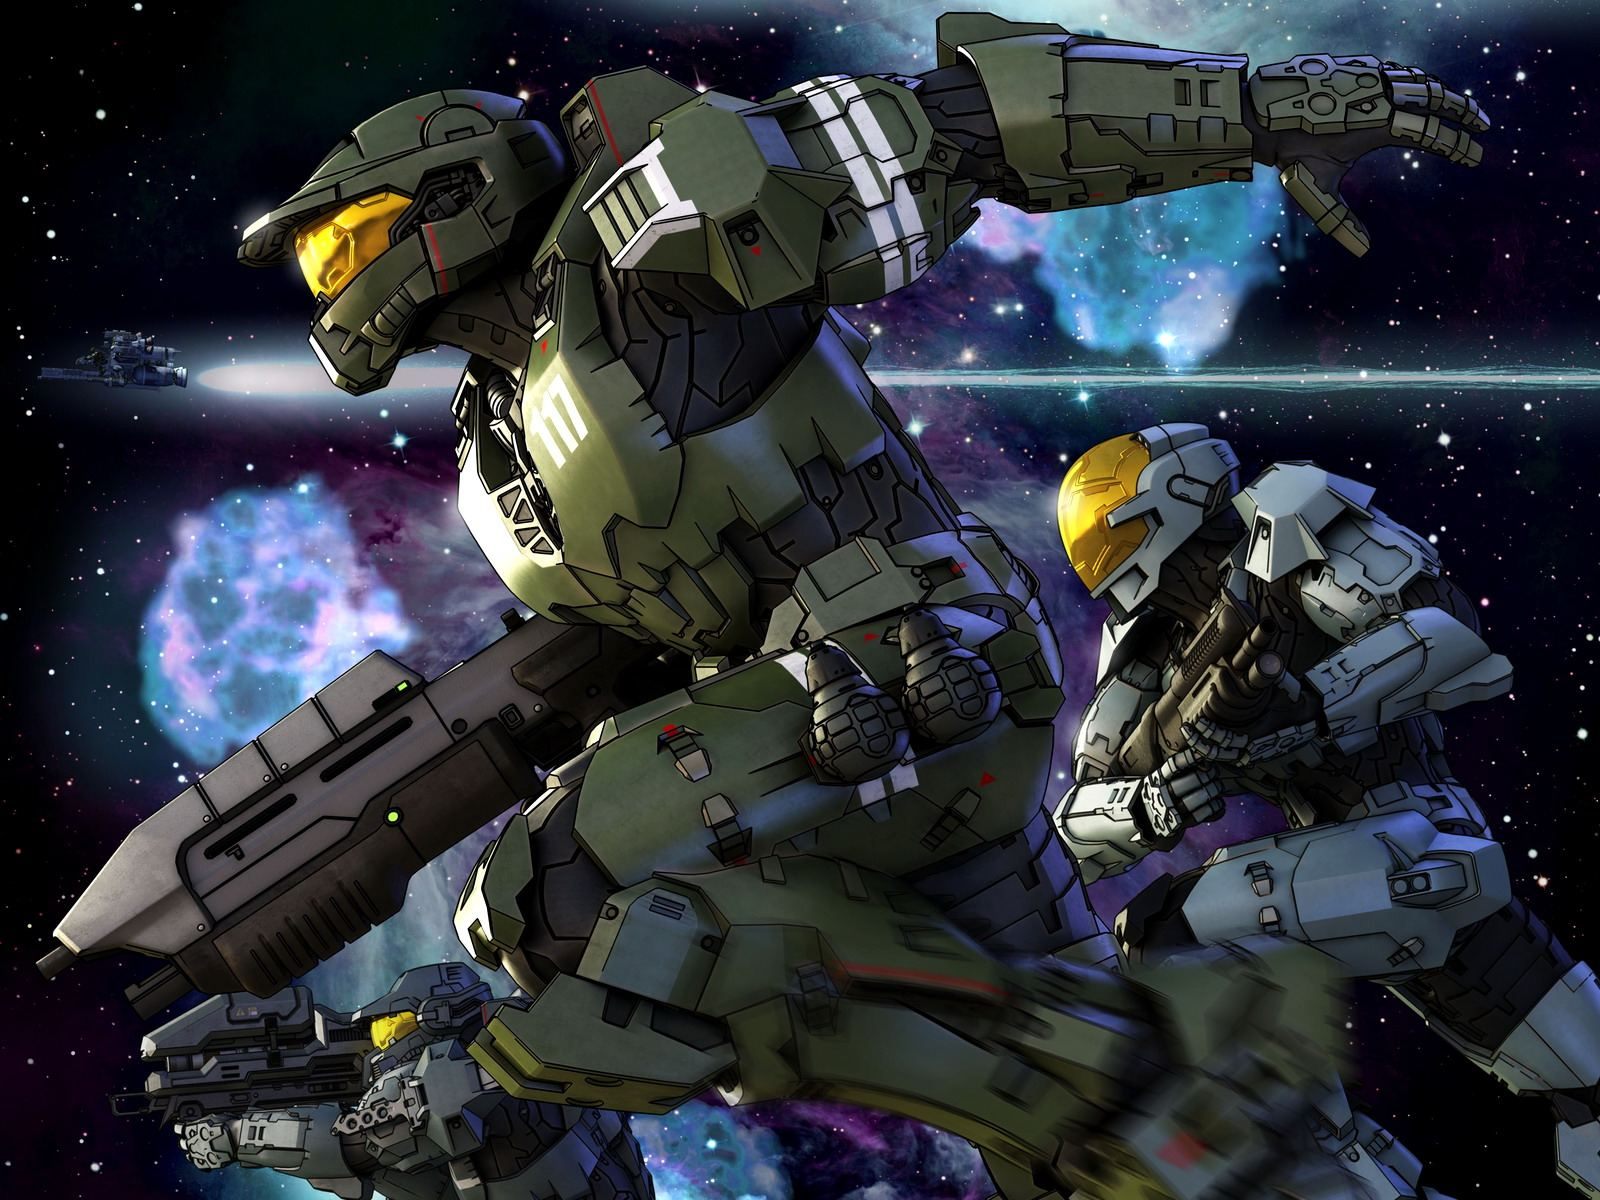 Halo Legends Wallpaper And Background Image 1600x1200 Id 86322